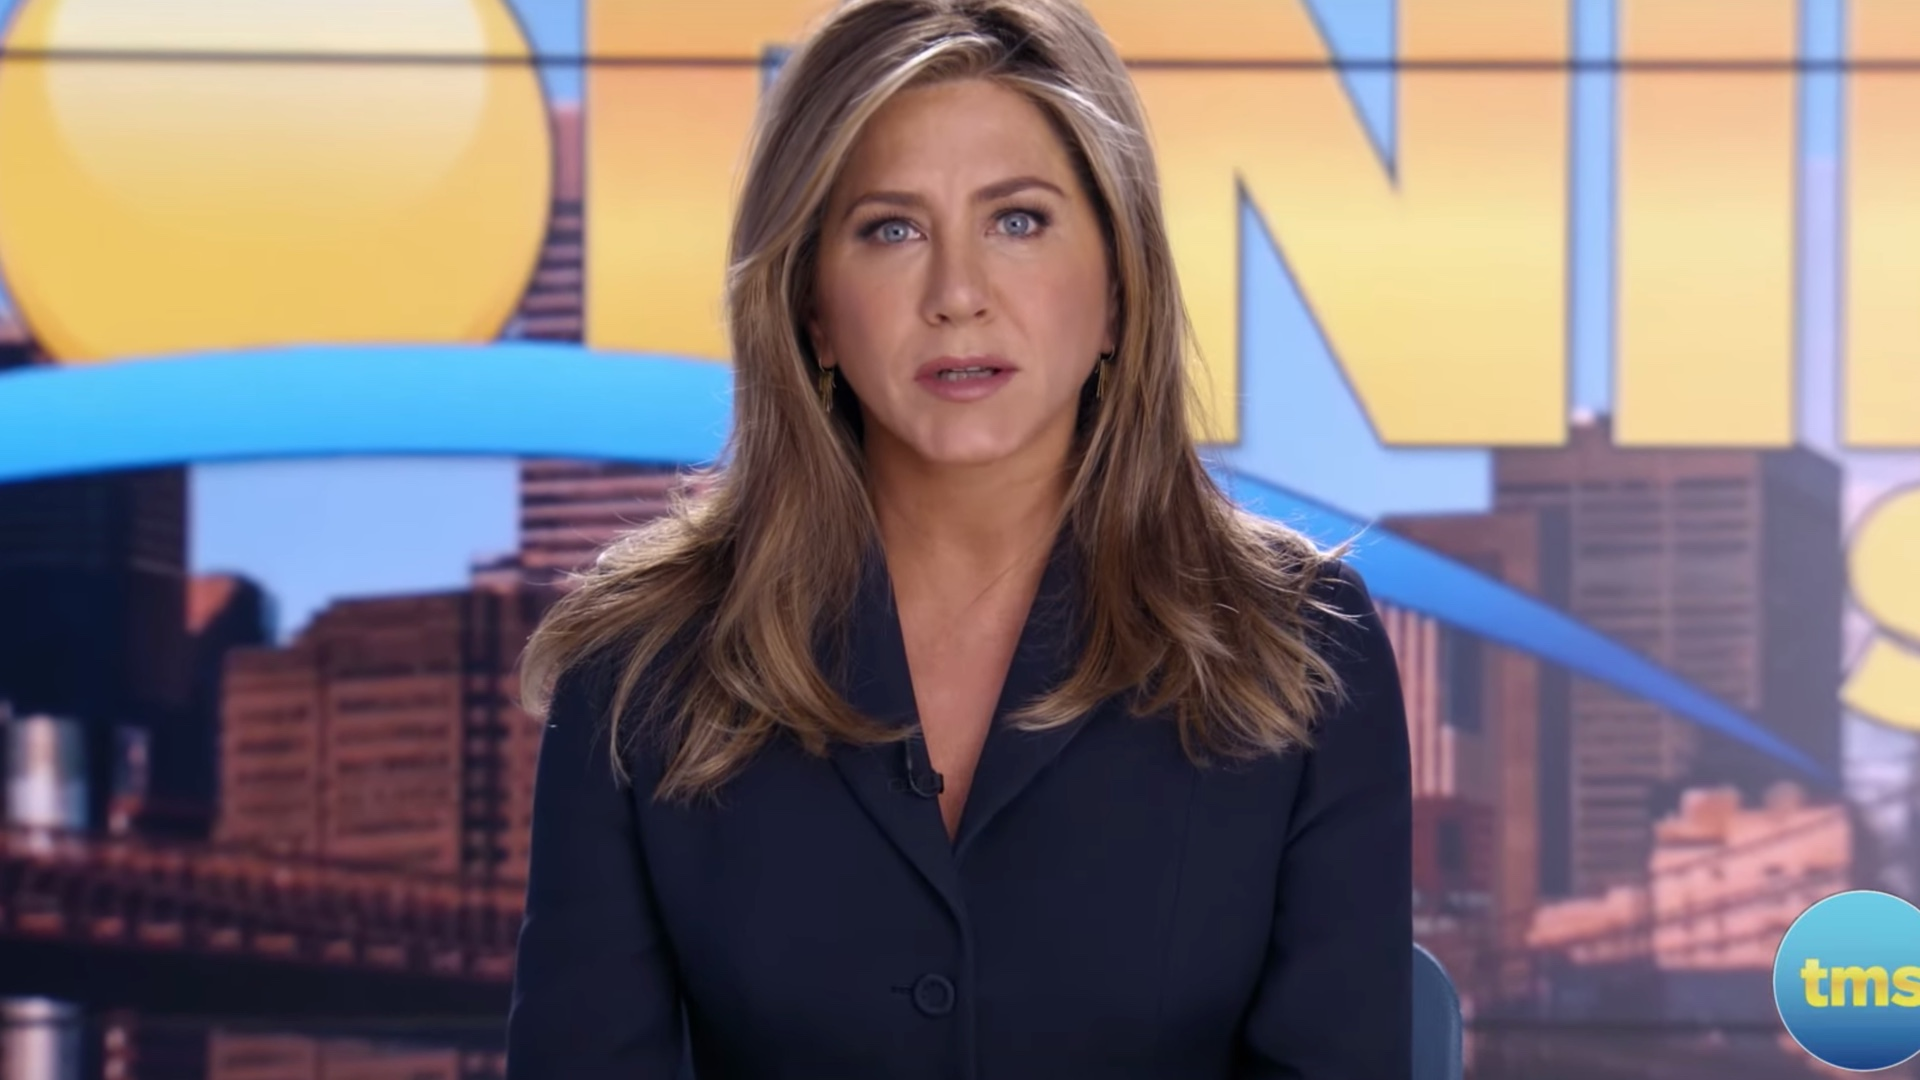 Jennifer Aniston stars in the hot seat in The Morning Show for Apple TV+.